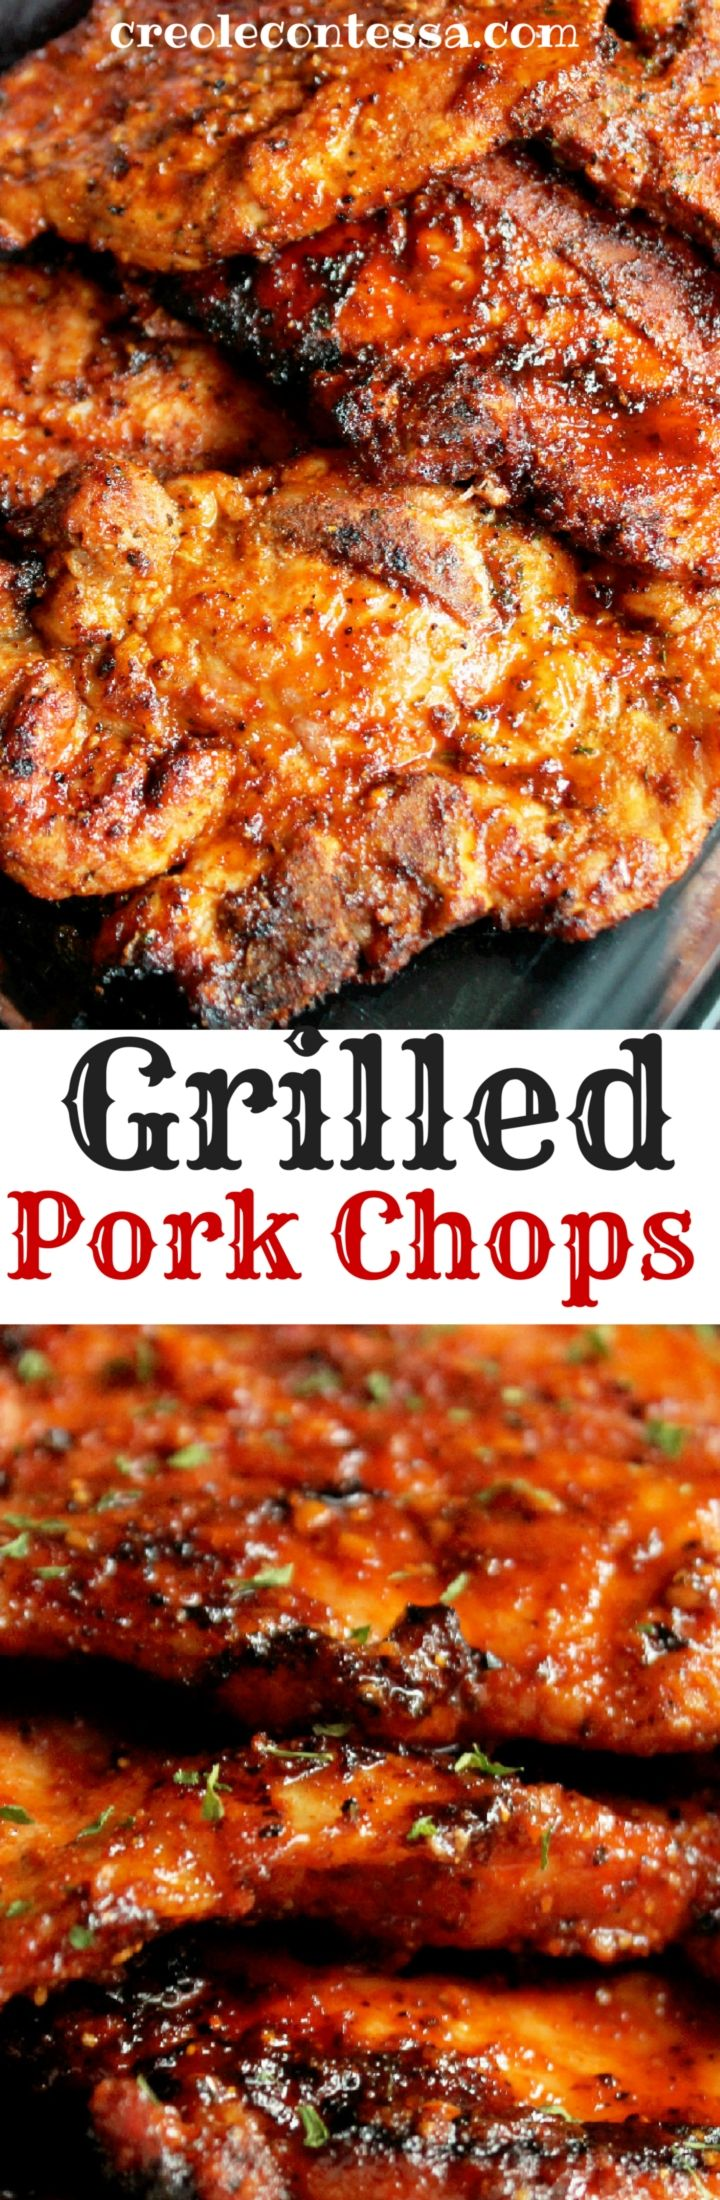 Grilled Pork Chops-Creole Contessa